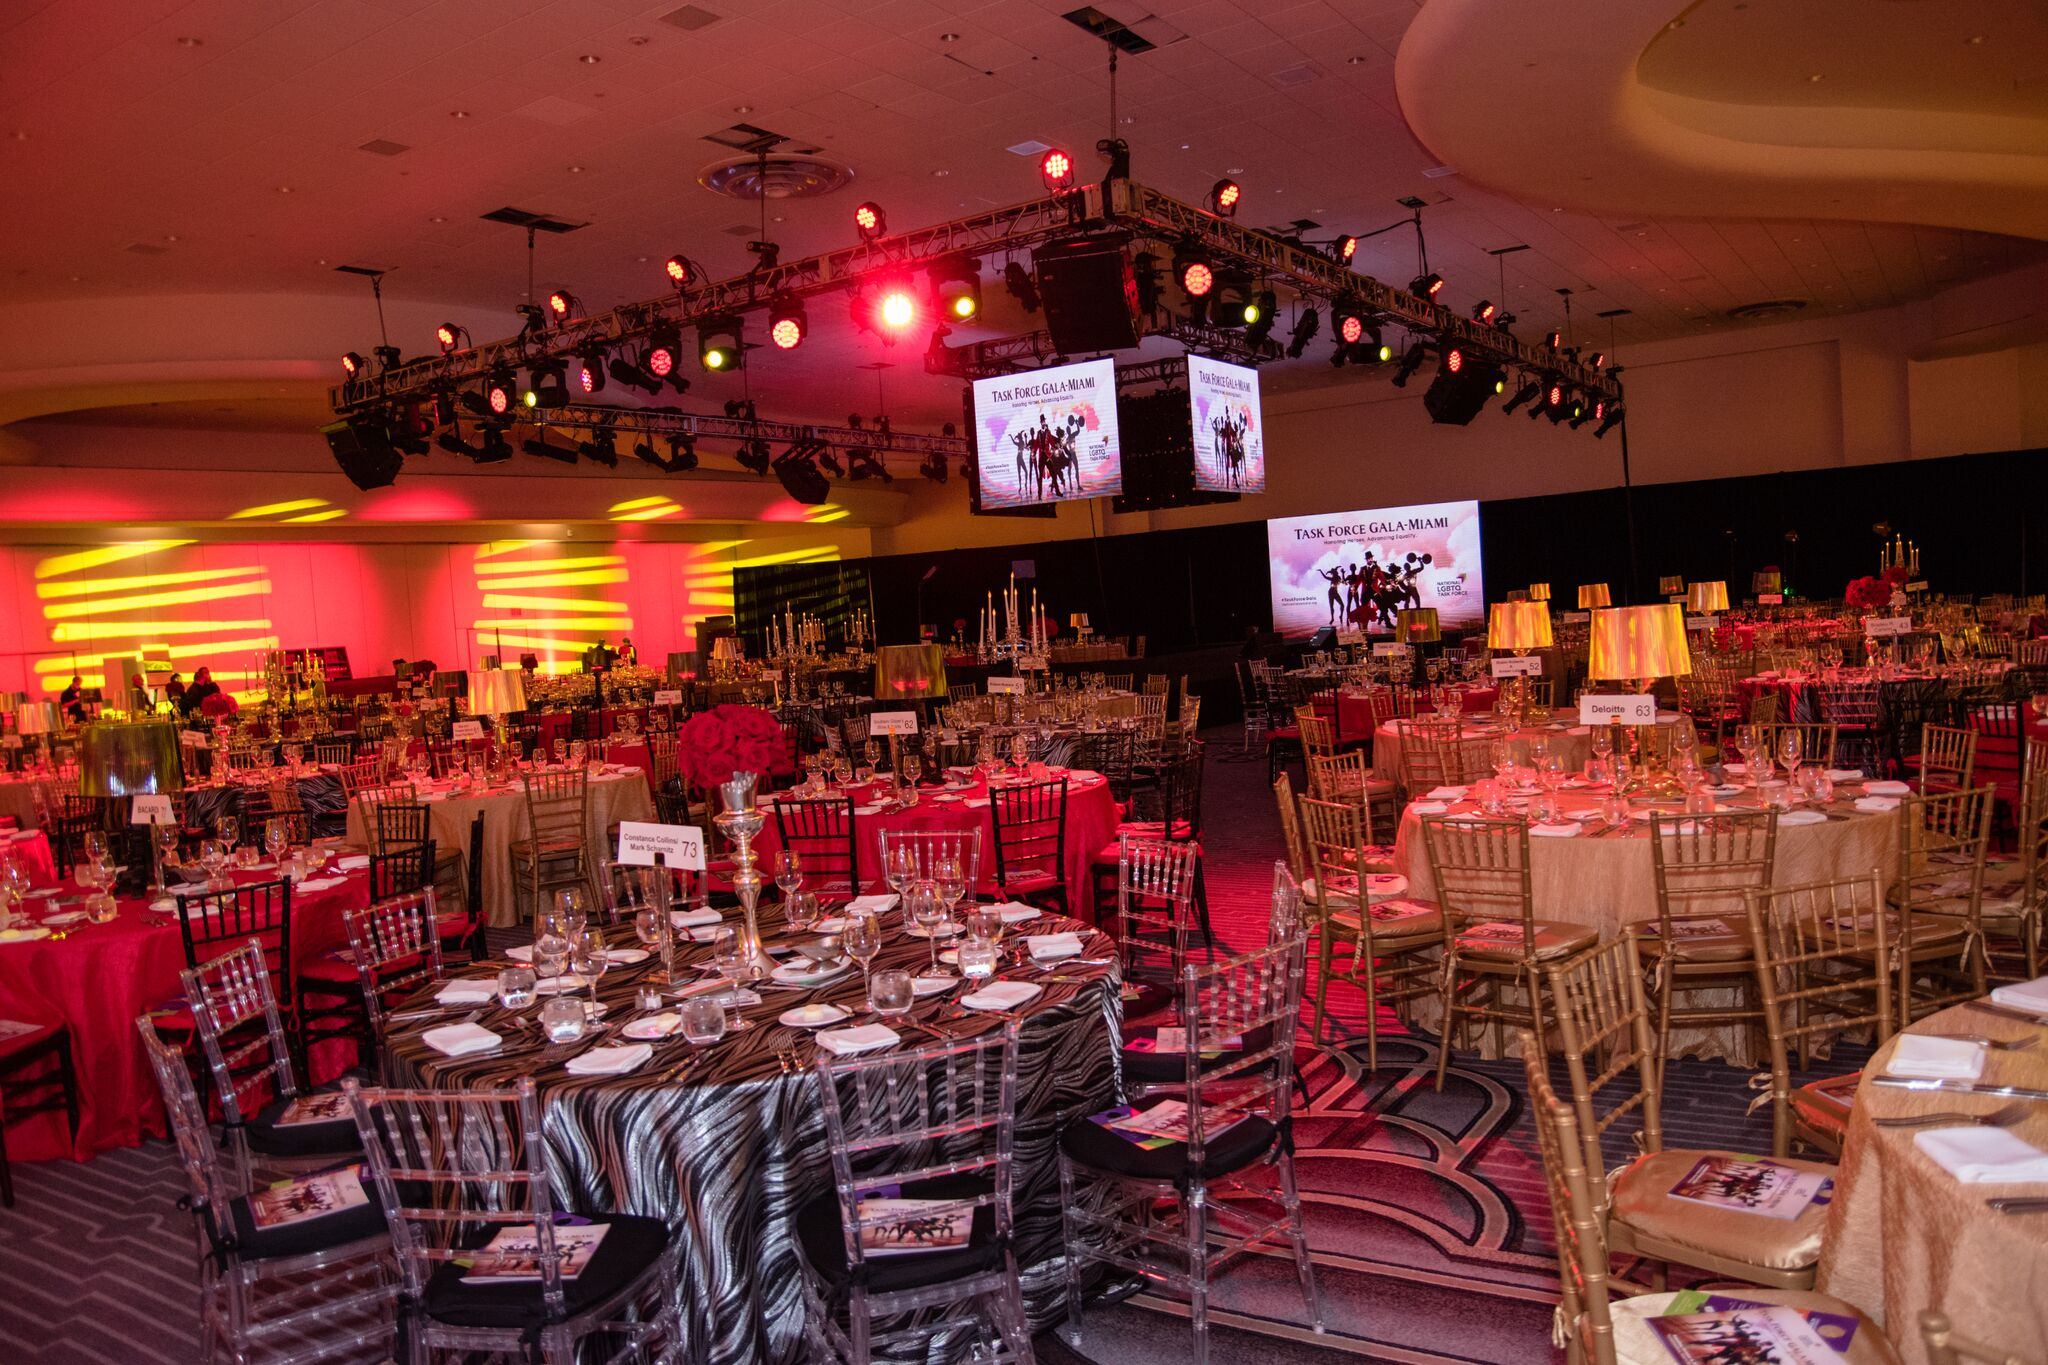 Event - Task Force Gala Miami